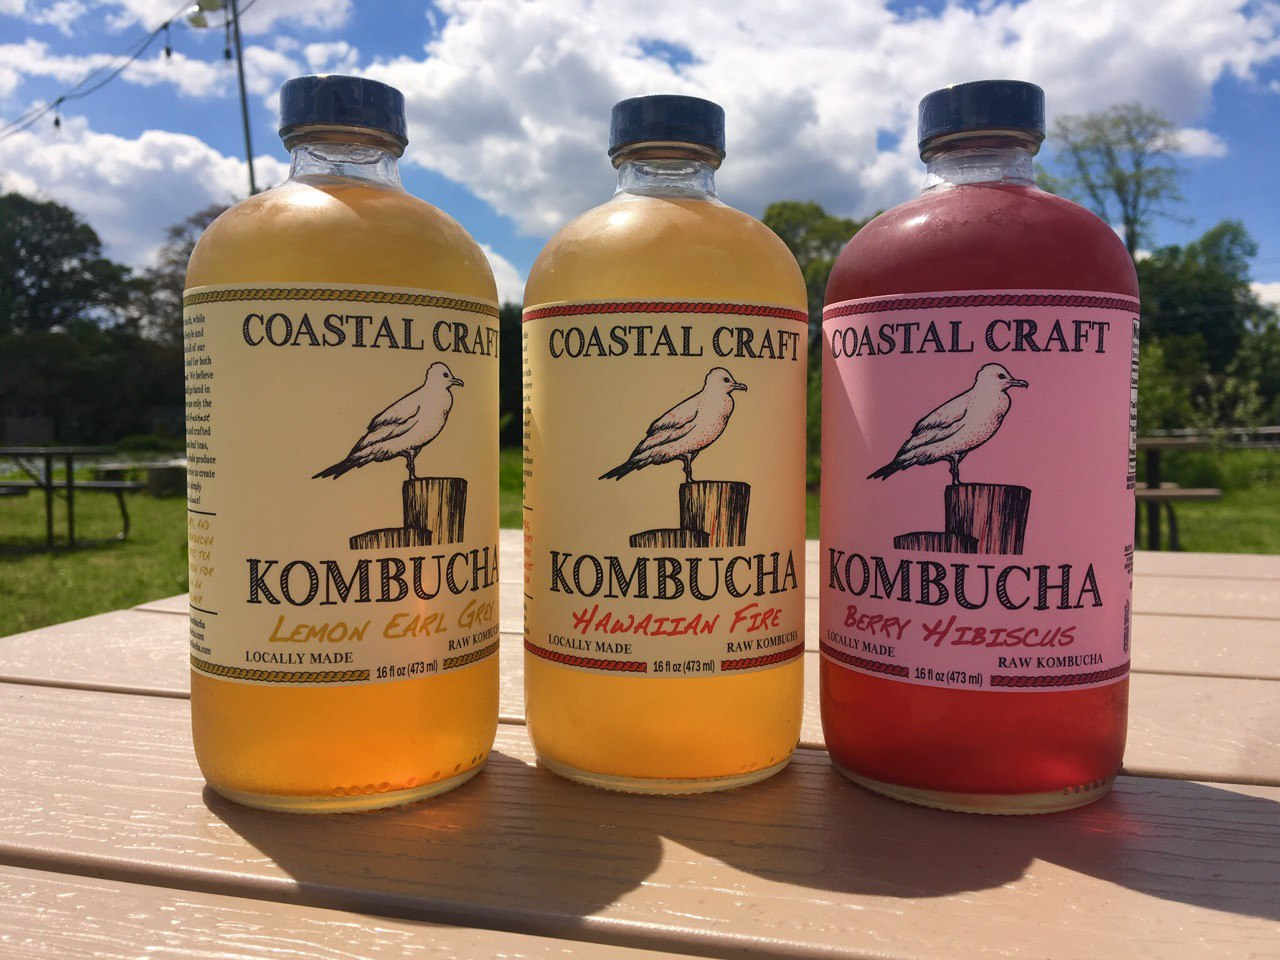 Coastal Craft Kombucha